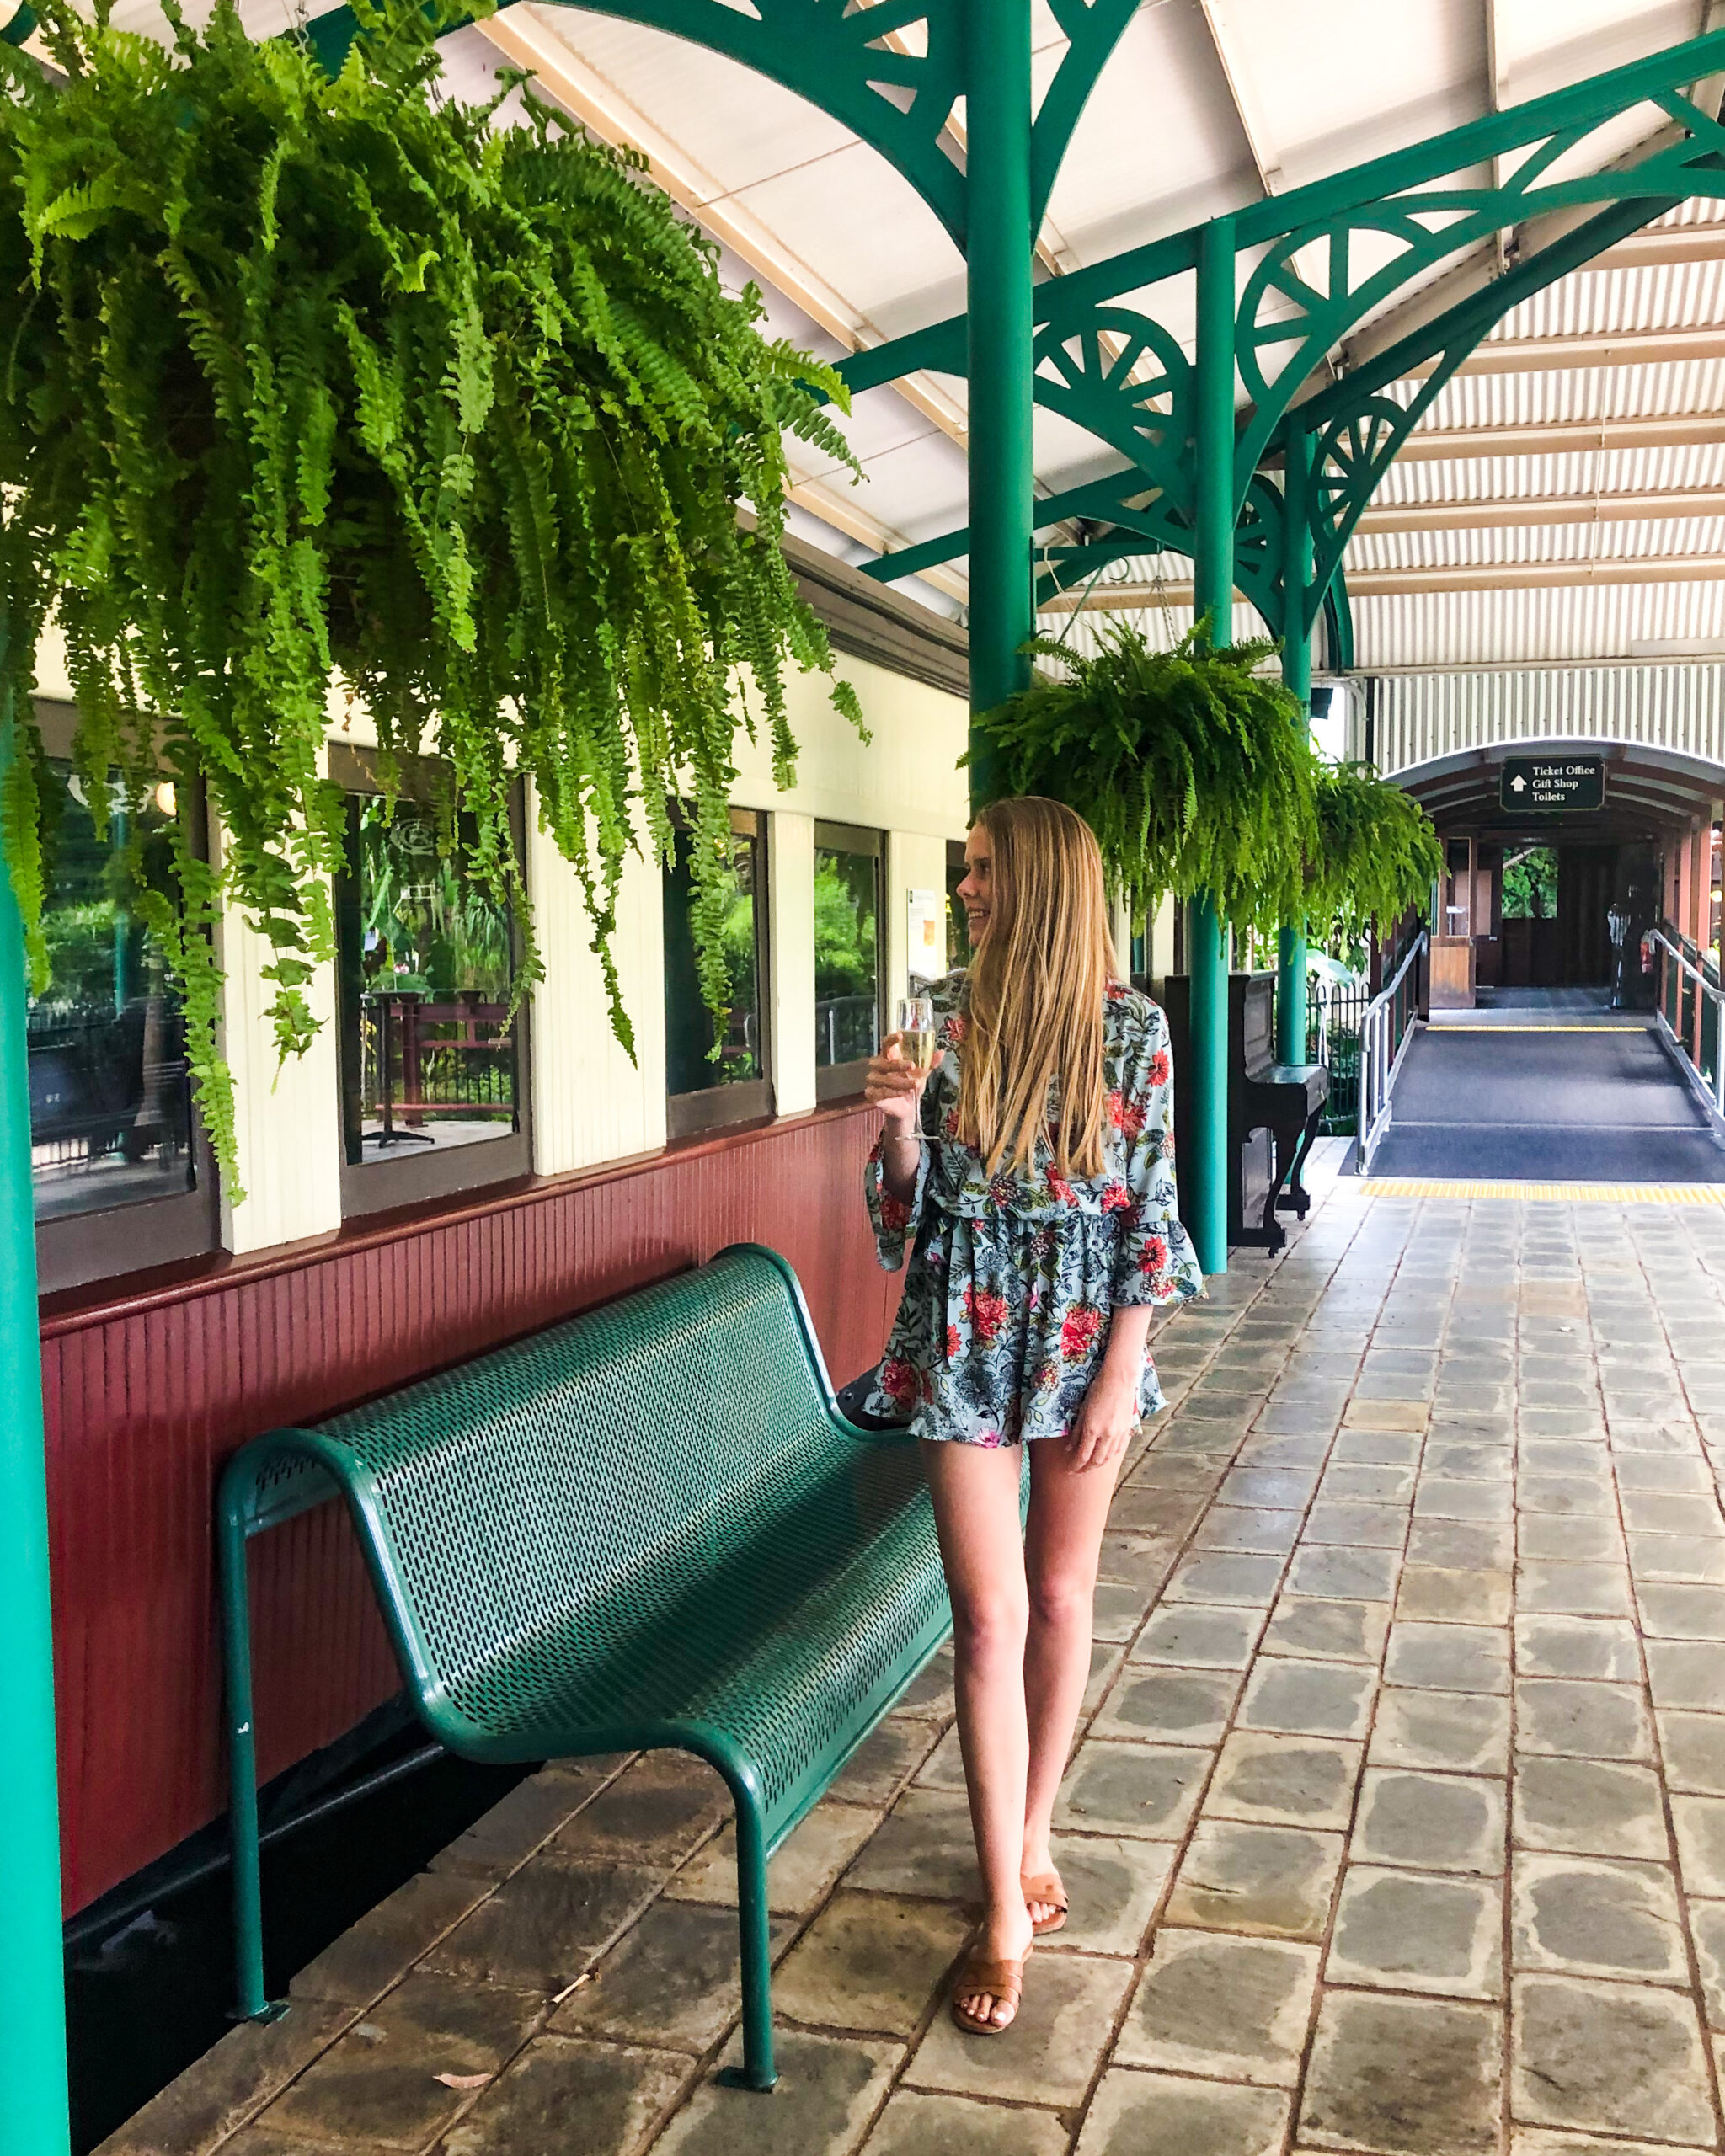 Girl standing holding champagne glass in front of train carriage at train station at the High Tea Trolley